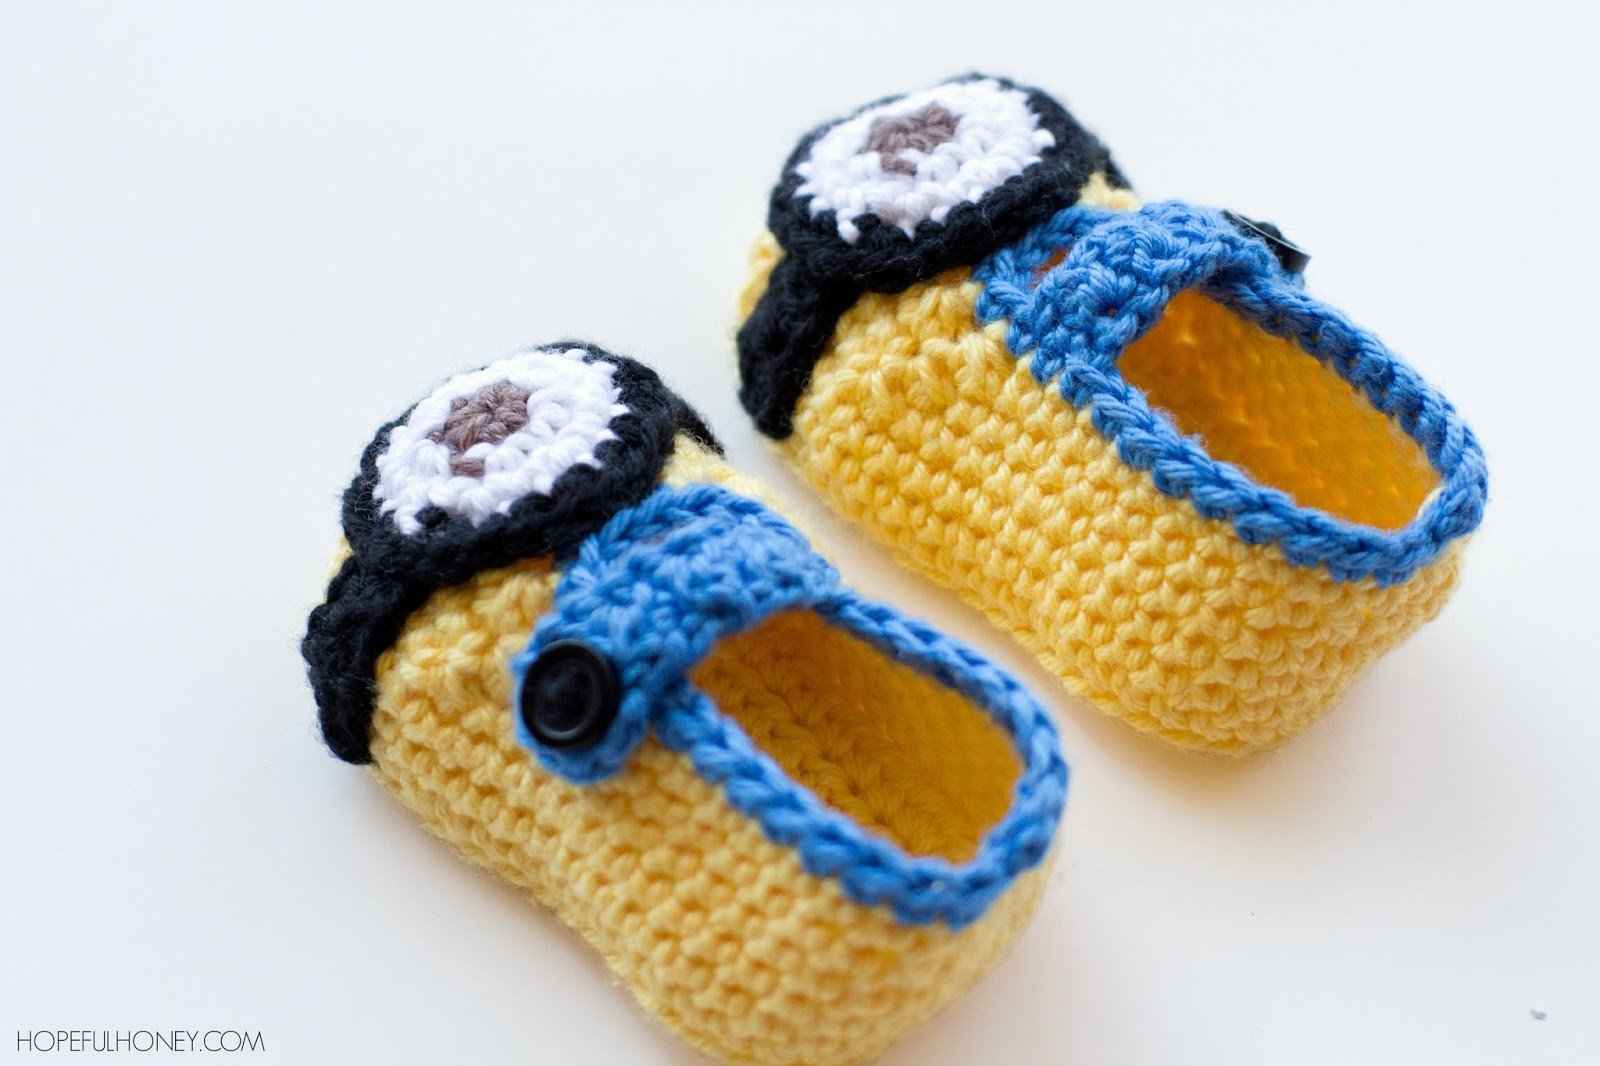 Free Crochet Pattern Minion Baby Booties : Hopeful Honey Craft, Crochet, Create: Minion Inspired ...